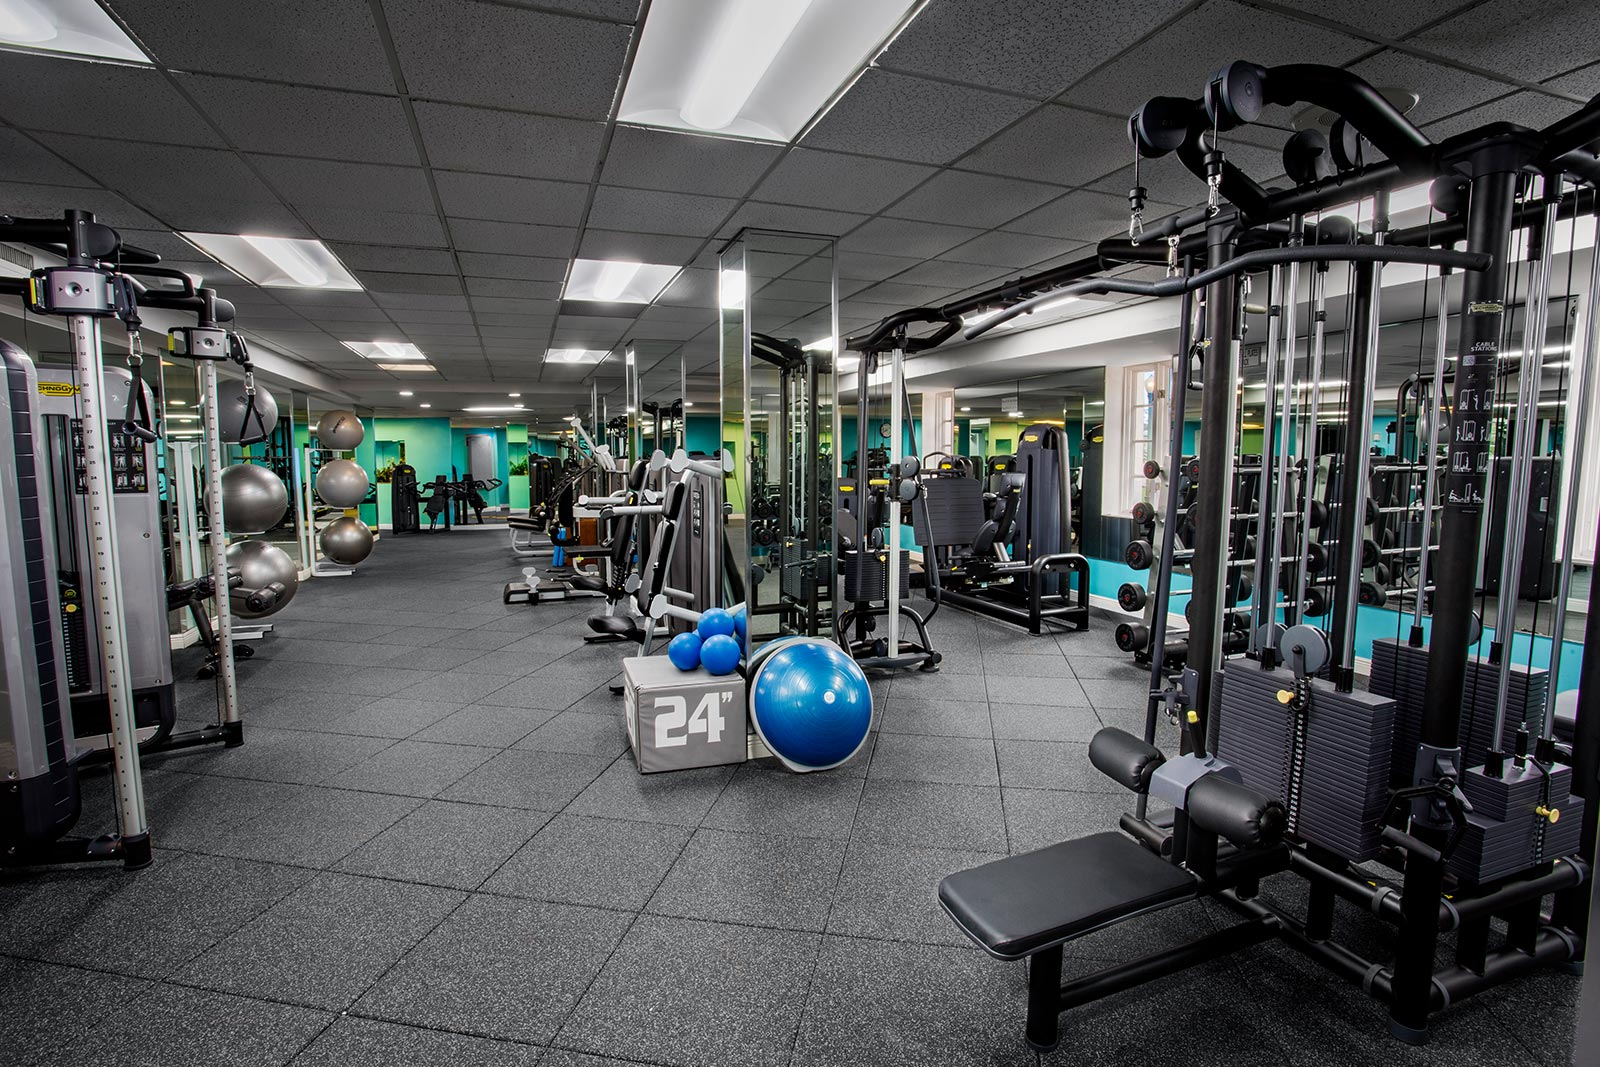 Biltmore Hotel fitness center